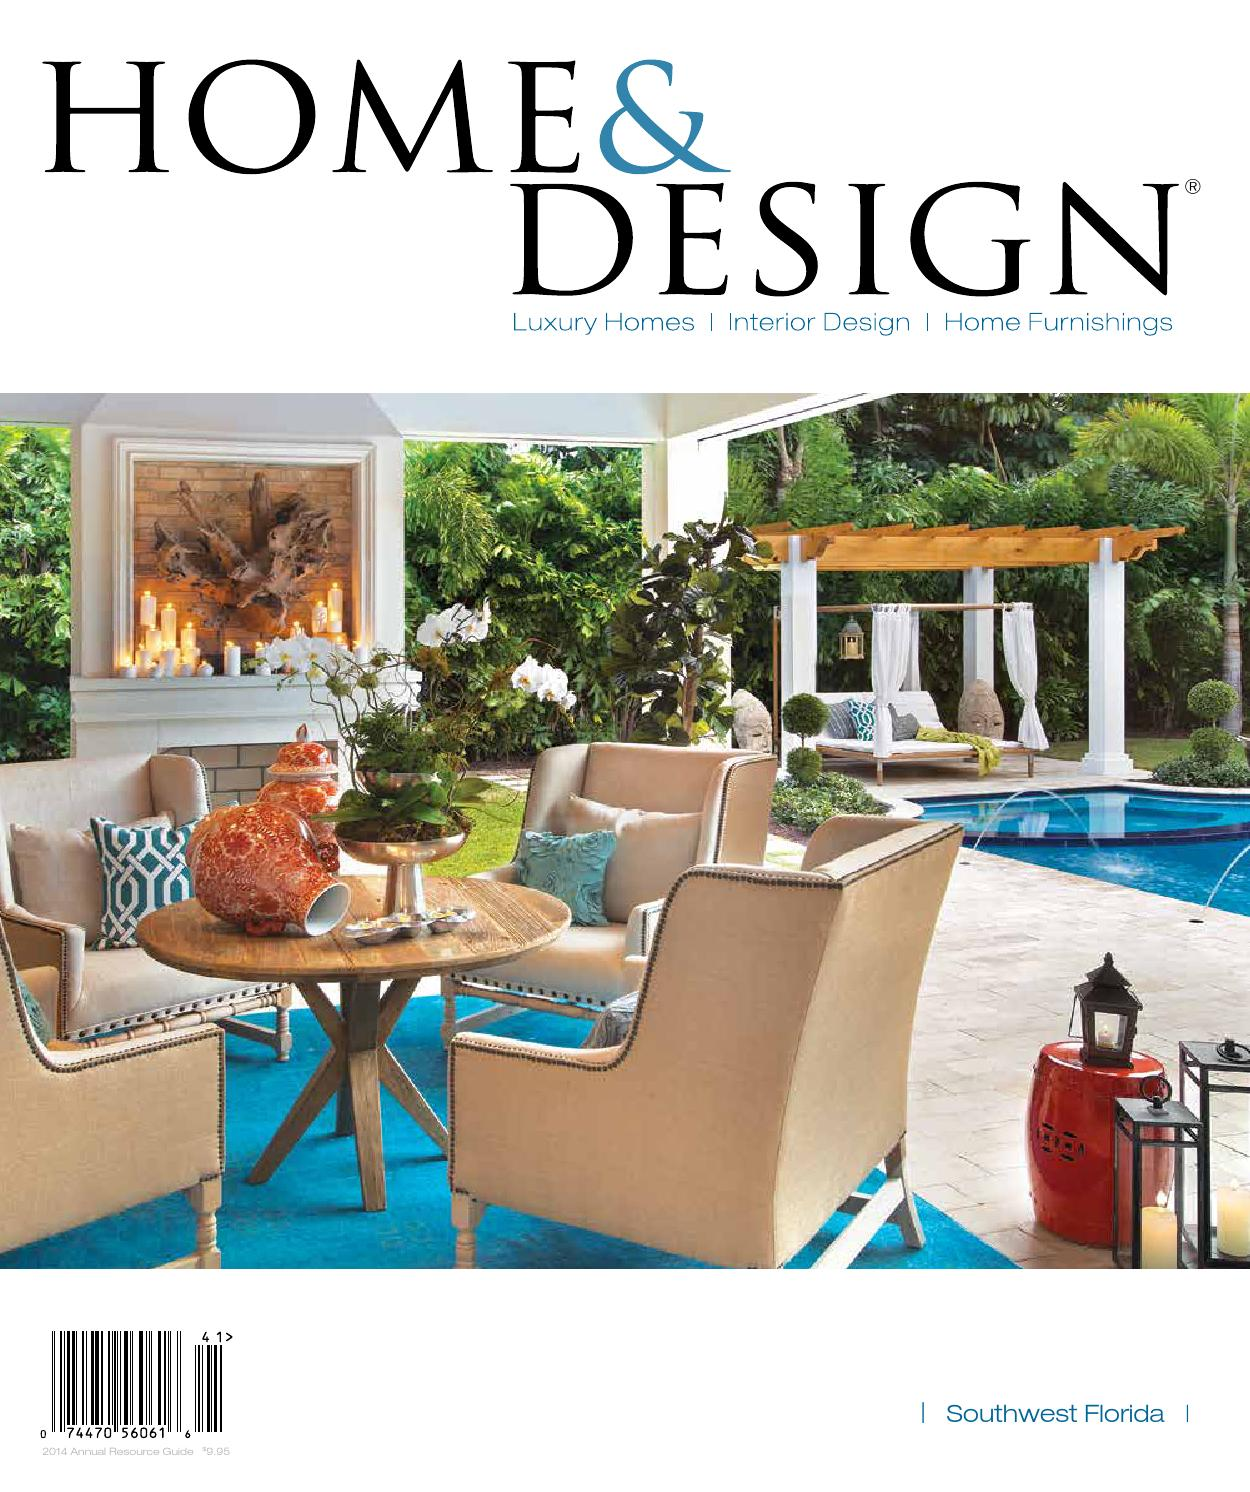 Home design magazine annual resource guide 2014 for Home design resources